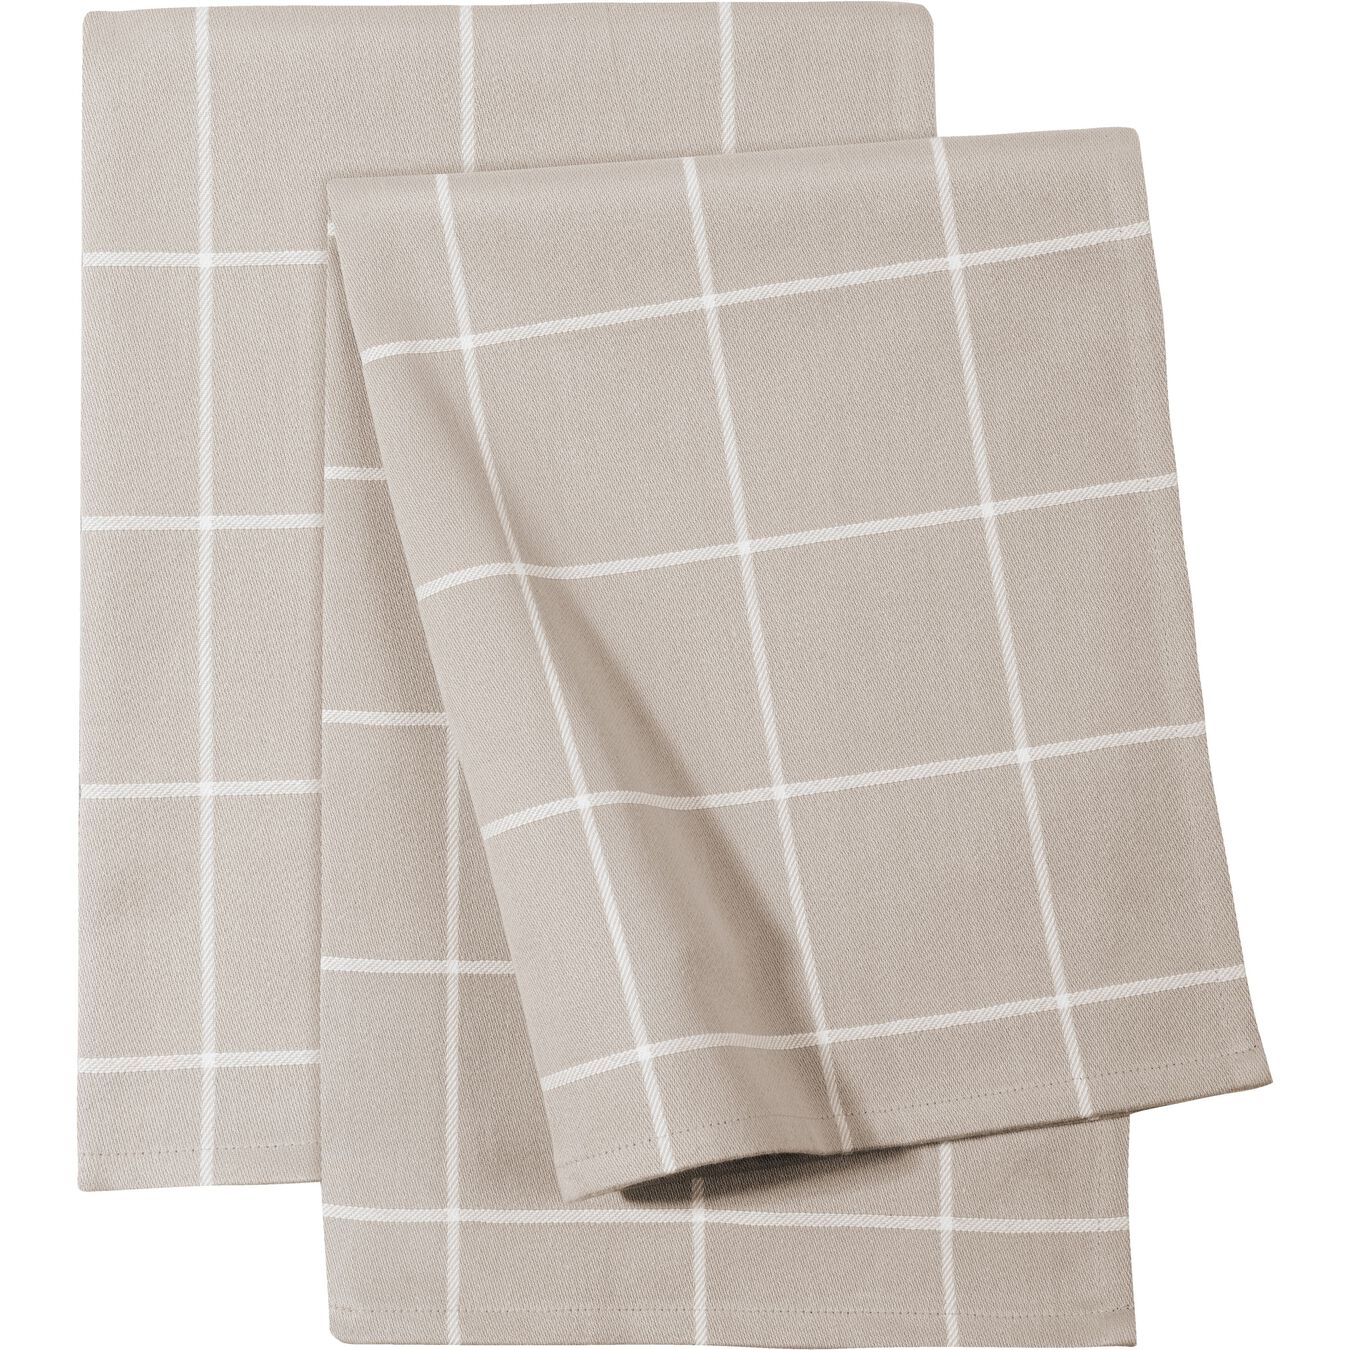 2 Piece Cotton Kitchen towel set checkered, taupe,,large 1